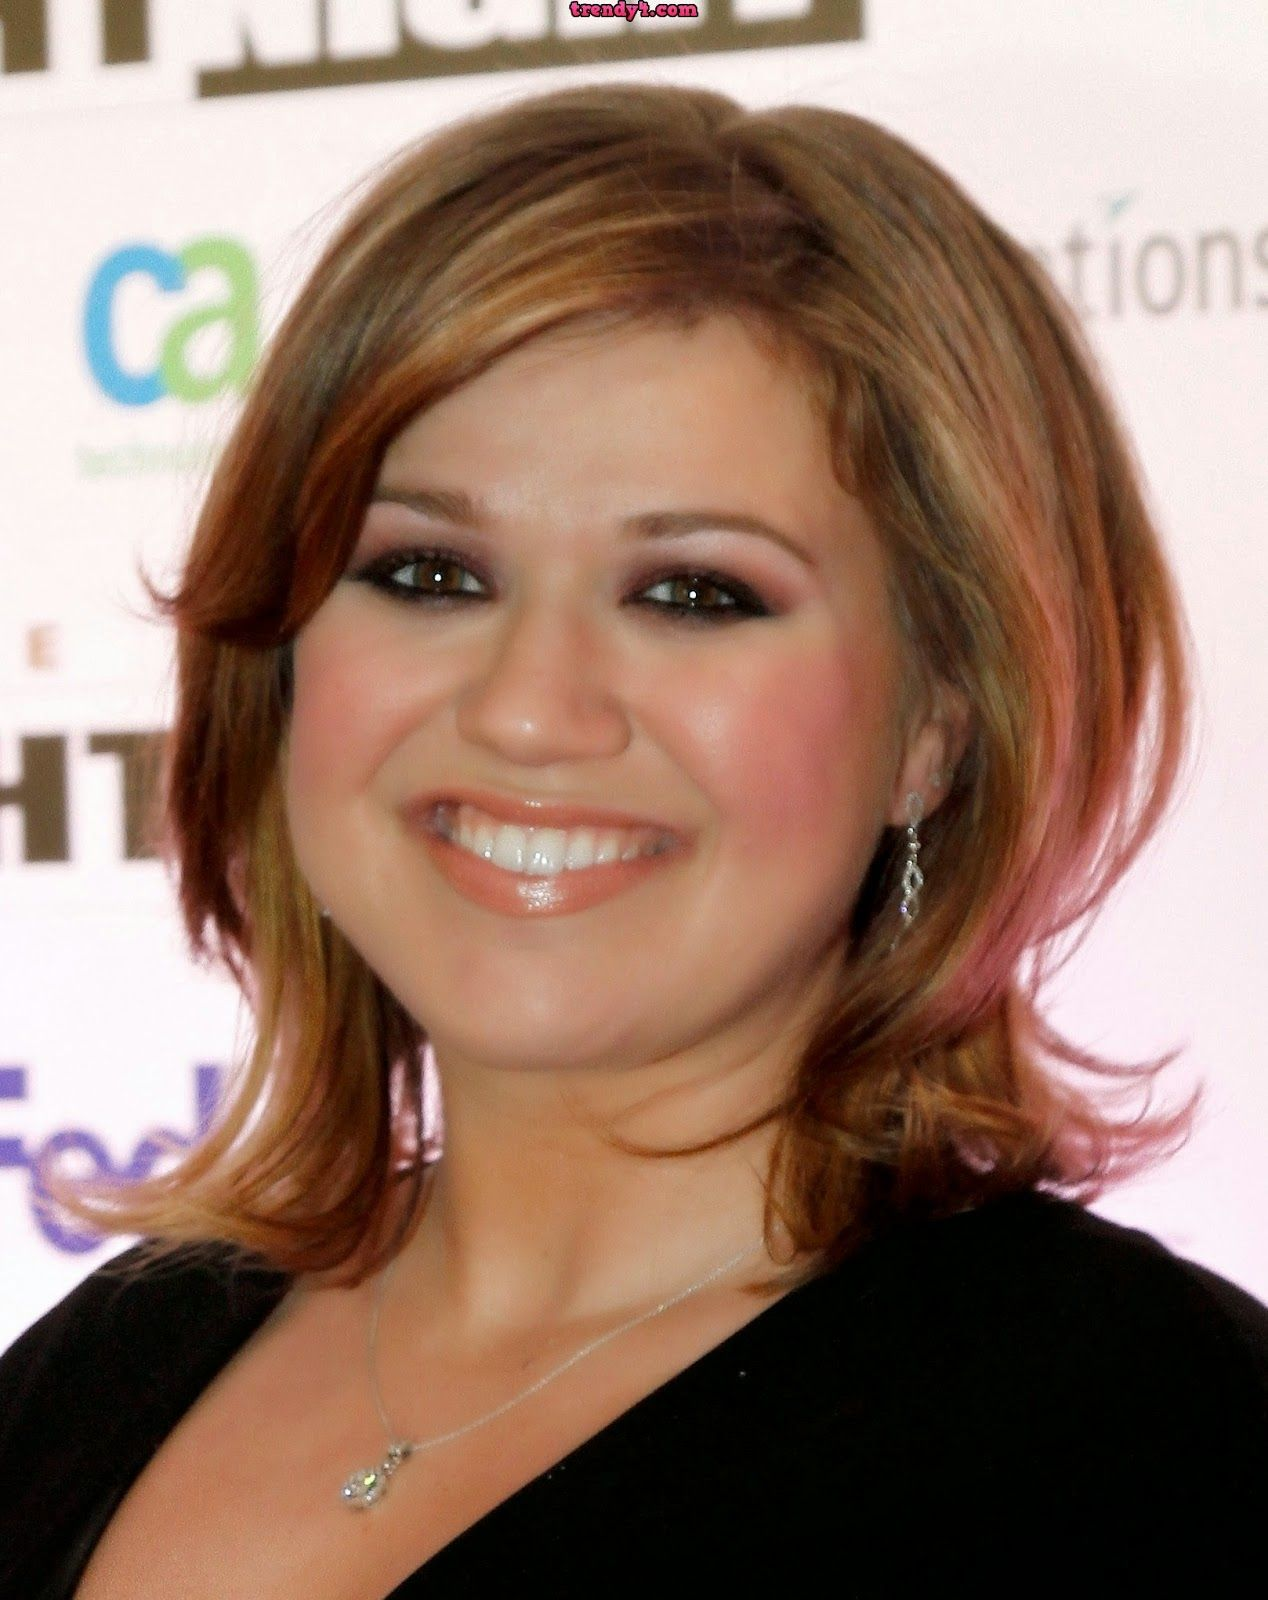 Haircuts for plus size women